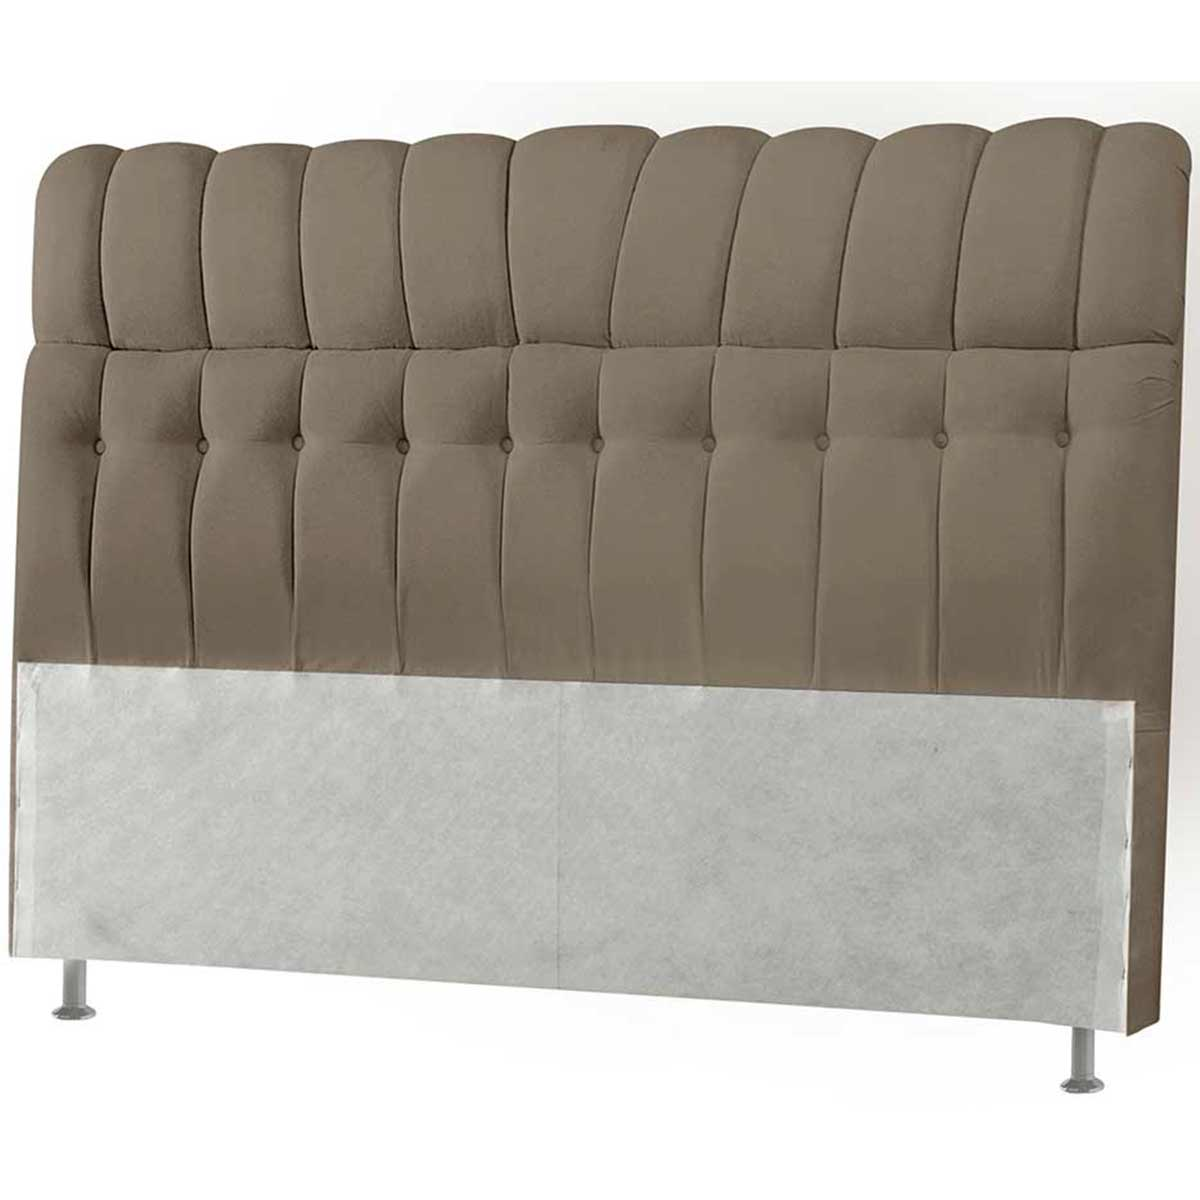 Cabeceira Condessa Casal 140 cm Suede Taupe Simbal